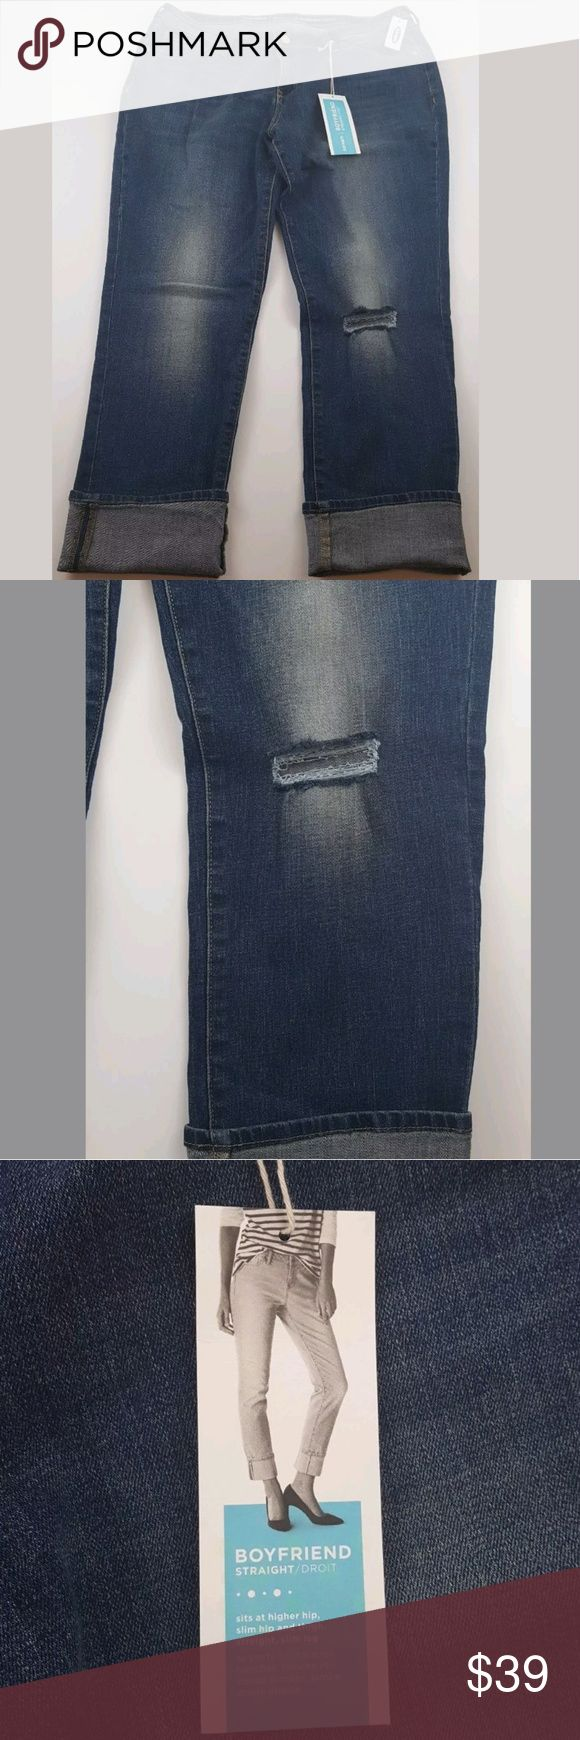 """NEW Old Navy Women's Jeans 12 Boyfriend Straight Brand: Old Navy  size: women's 12 Regular  style: Boyfriend straight (sits at higher hip, slim hip and thigh, straight & slim leg) Factory distressed, faded and destroyed  wash: med/dark blue  material:85% cotton 13% polyester 2% Spandex  condition: Brand new-no flaws- tags still attached  measurements...  waist laying flat across: 17.5""""  inseam: 29"""" un-cuffed  rise: 10""""  leg opening at ankles: 7.25"""" Old Navy Jeans Boyfriend"""